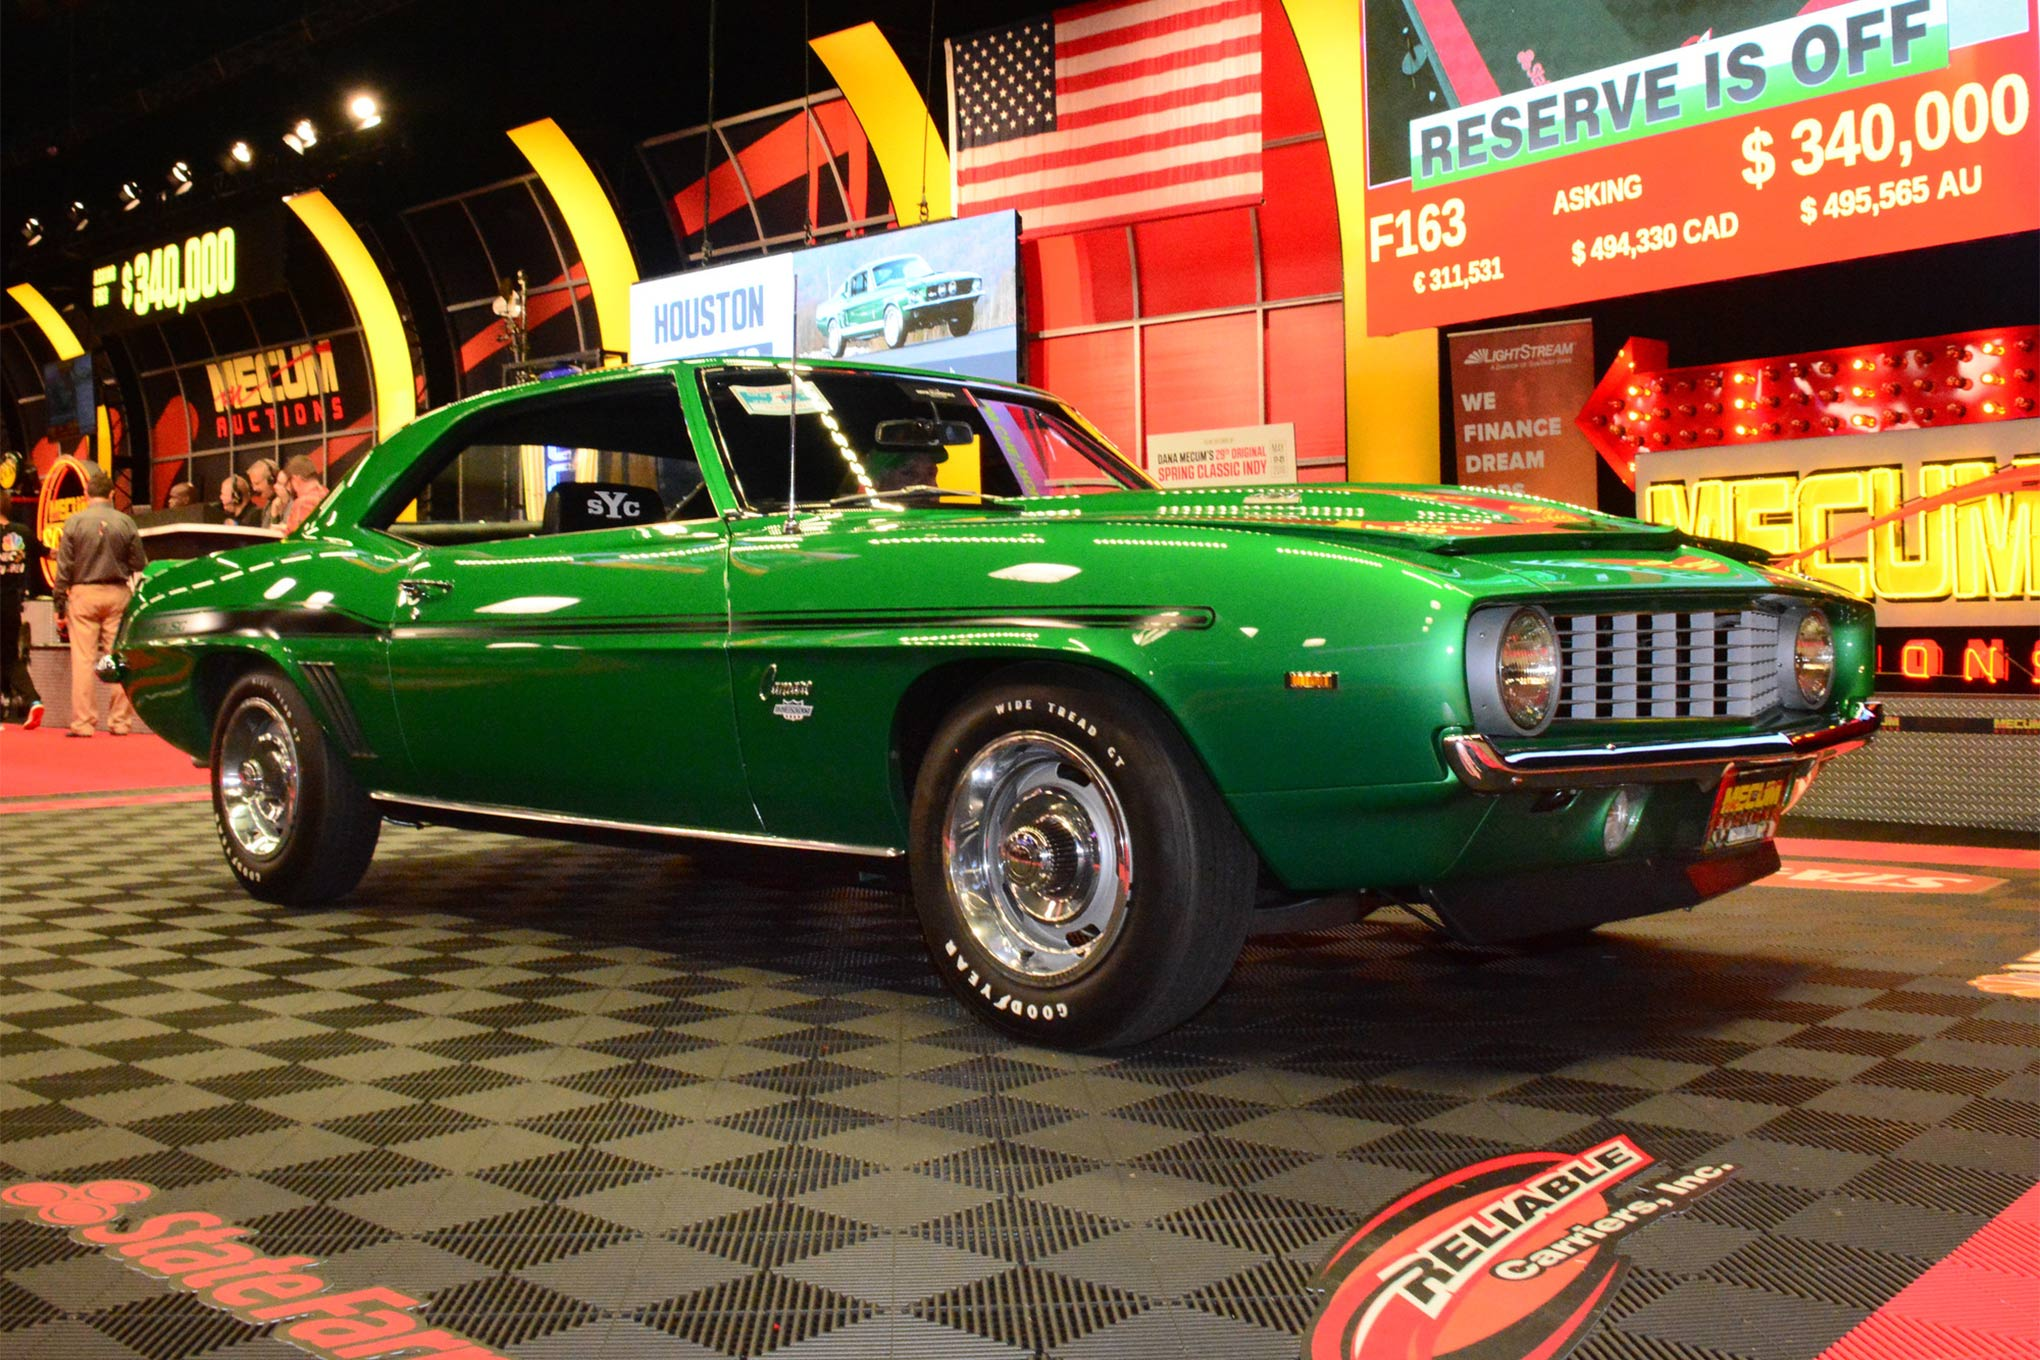 The highest-priced Chevrolet was a 1963 tanker Corvette that sold for $710,000 on Saturday. The top classic Chevy muscle car was this 1969 Yenko Camaro from the Wayne Schmeeckle collection, which brought $330,000 on Friday.